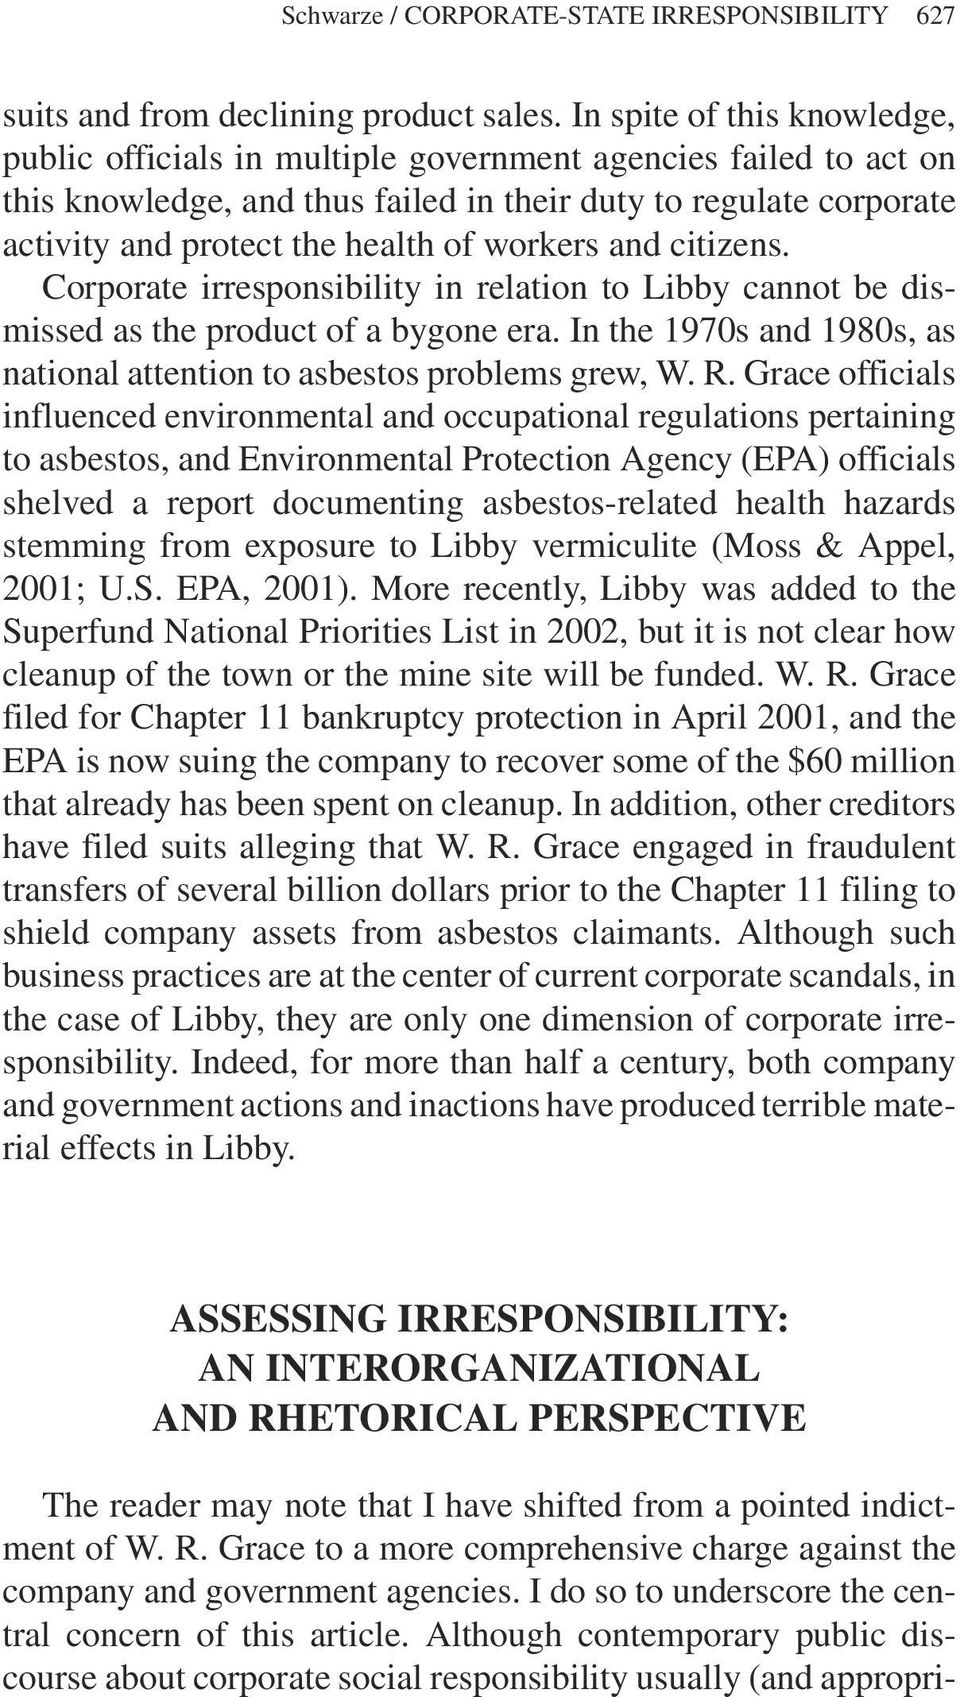 workers and citizens. Corporate irresponsibility in relation to Libby cannot be dismissed as the product of a bygone era. In the 1970s and 1980s, as national attention to asbestos problems grew, W. R.